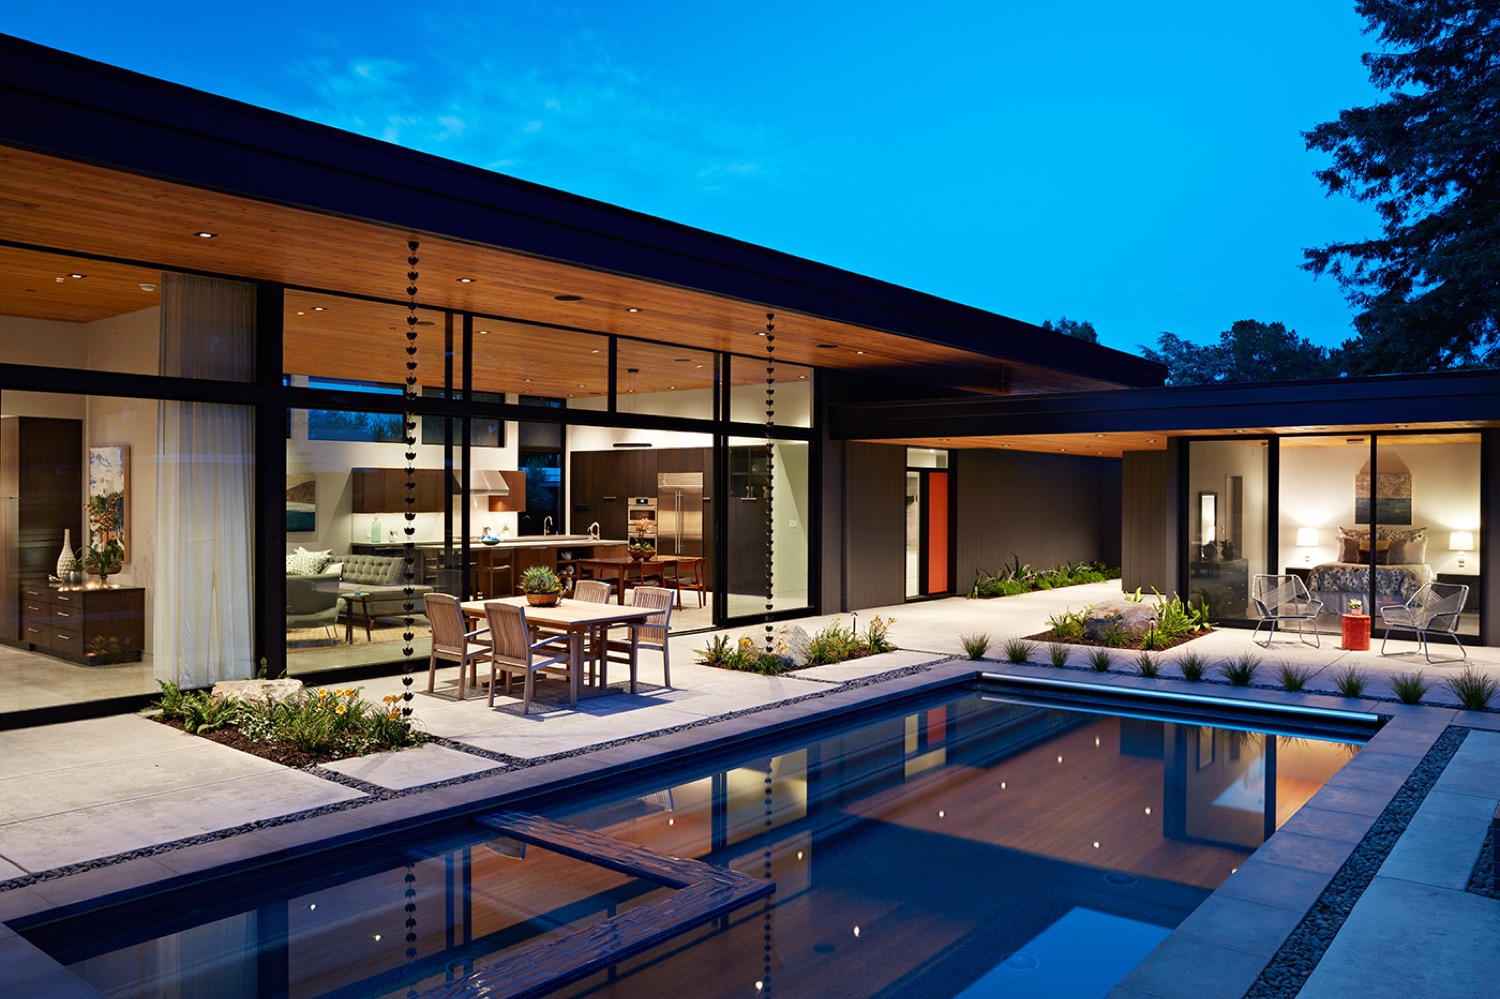 With the architectural and landscape lighting turned on at night, the glass wall seems to disappear, enhancing the connection of indoor and outdoor.